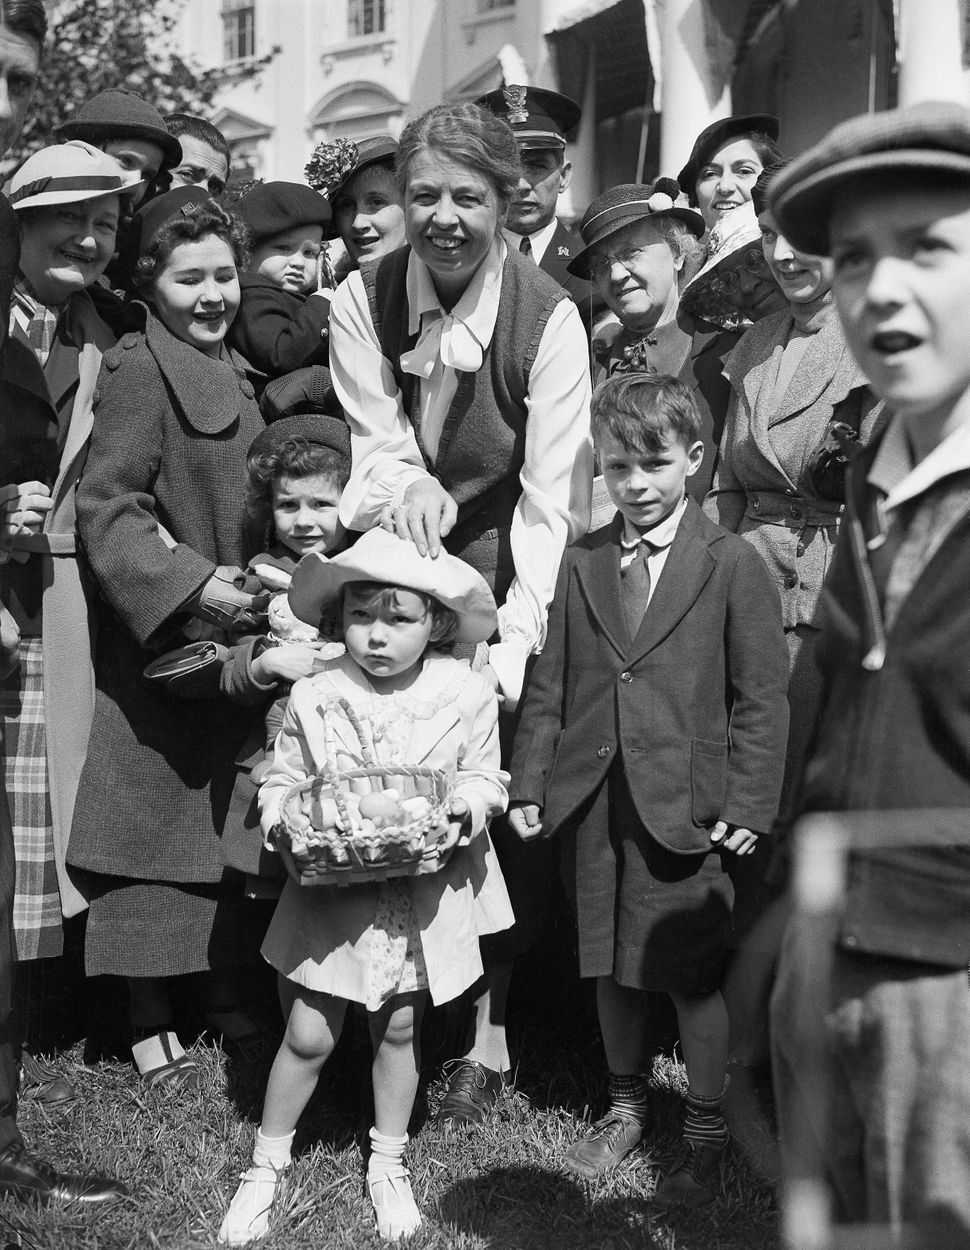 Eleanor Roosevelt greets children at the White House Easter Egg Roll in 1936. This year, more than 35,000 people are expected